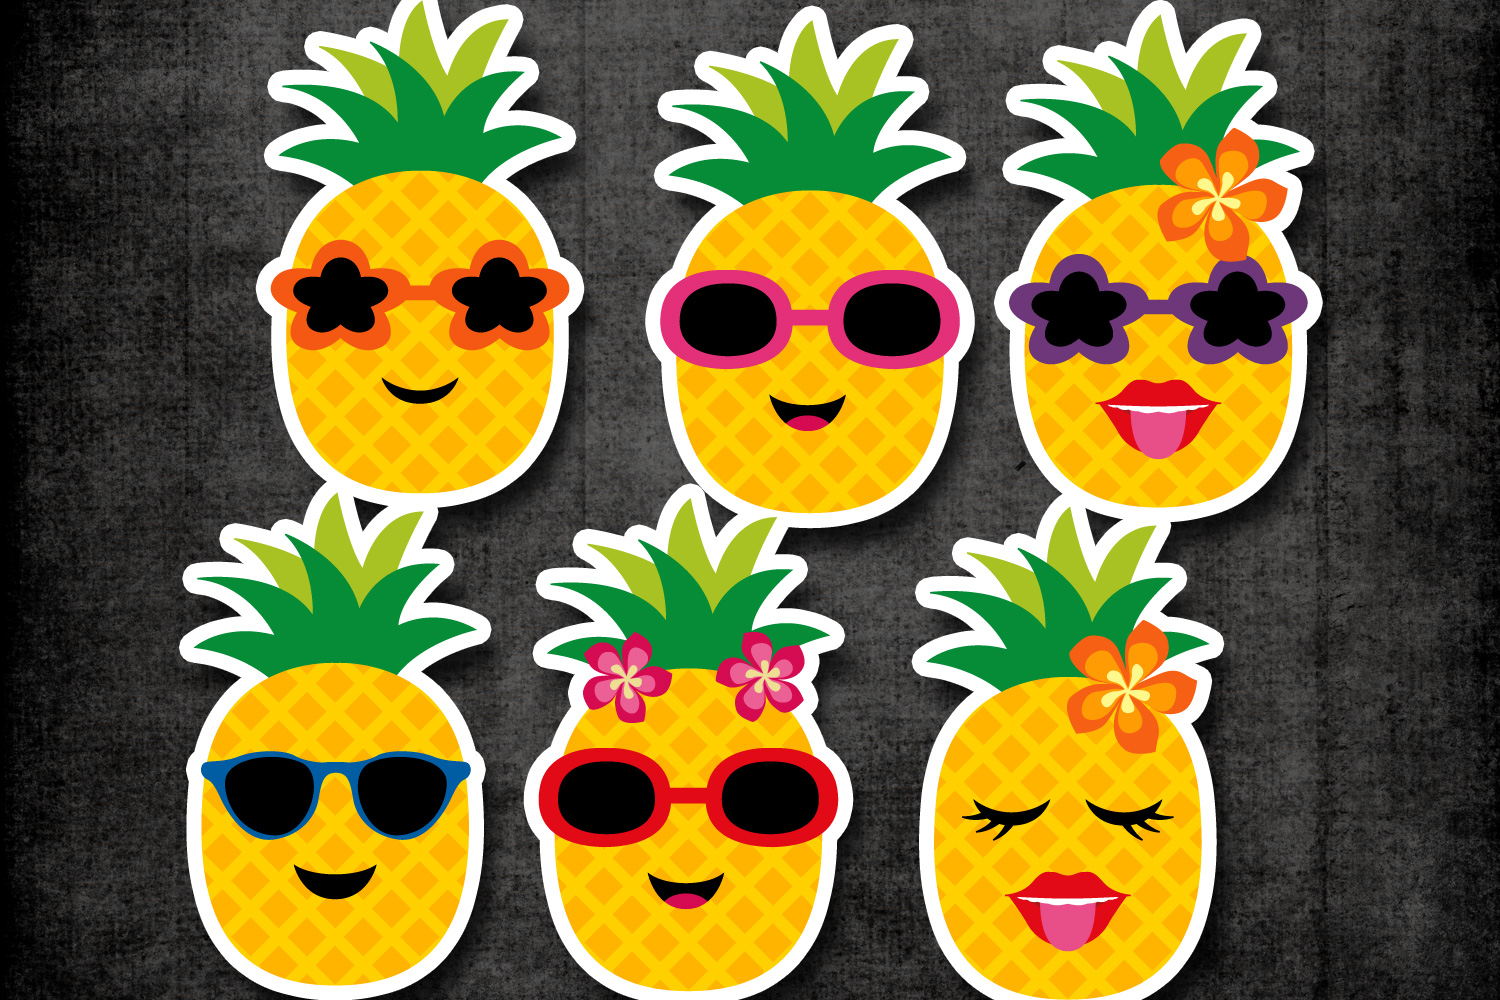 Summer pineapple with glasses clipart graphics